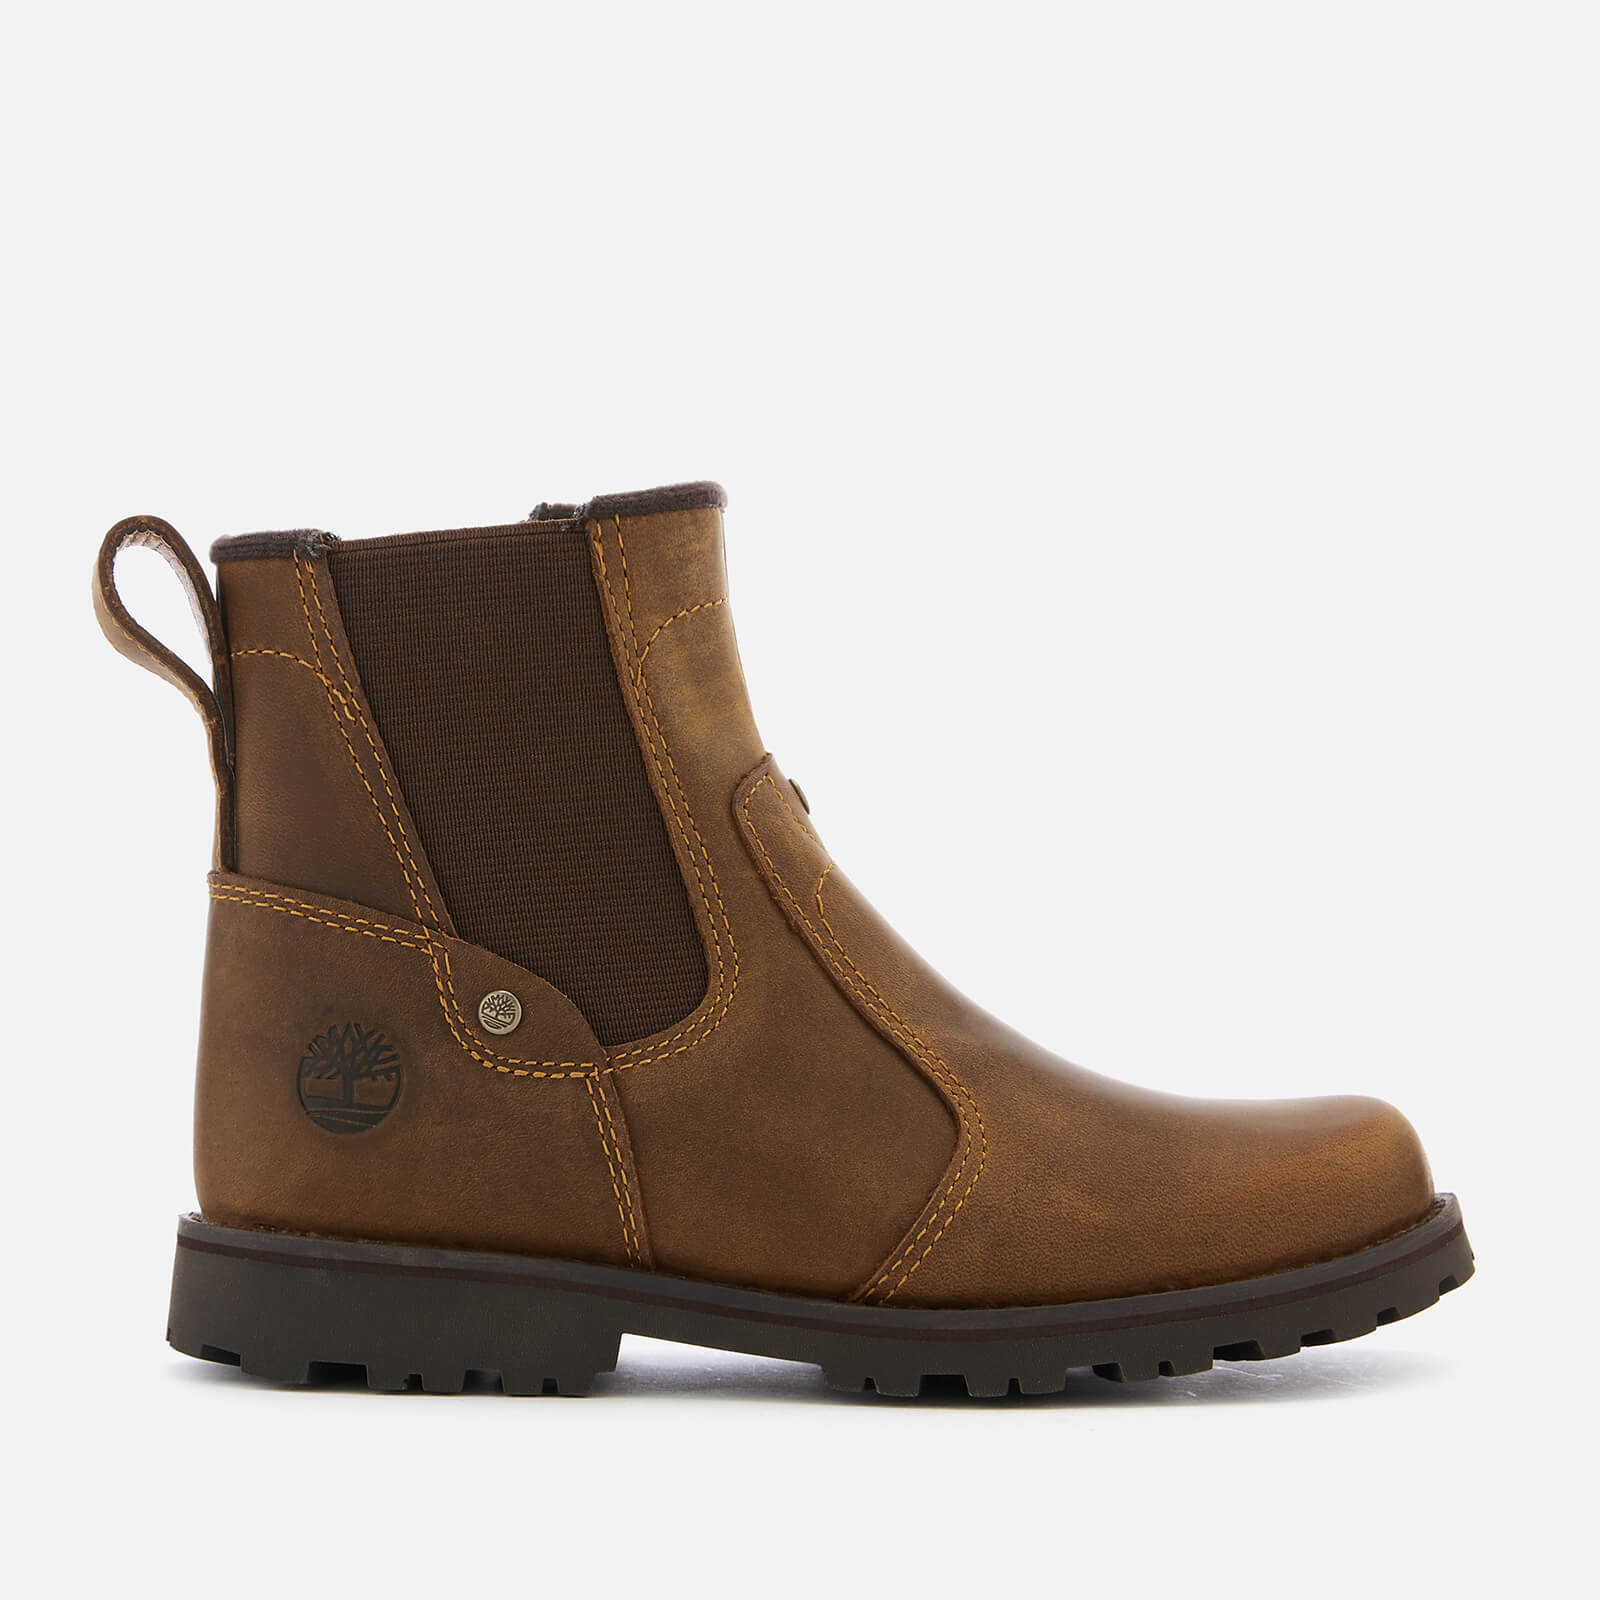 Timberland Kids' Asphalt Trail Leather Chelsea Boots Brown